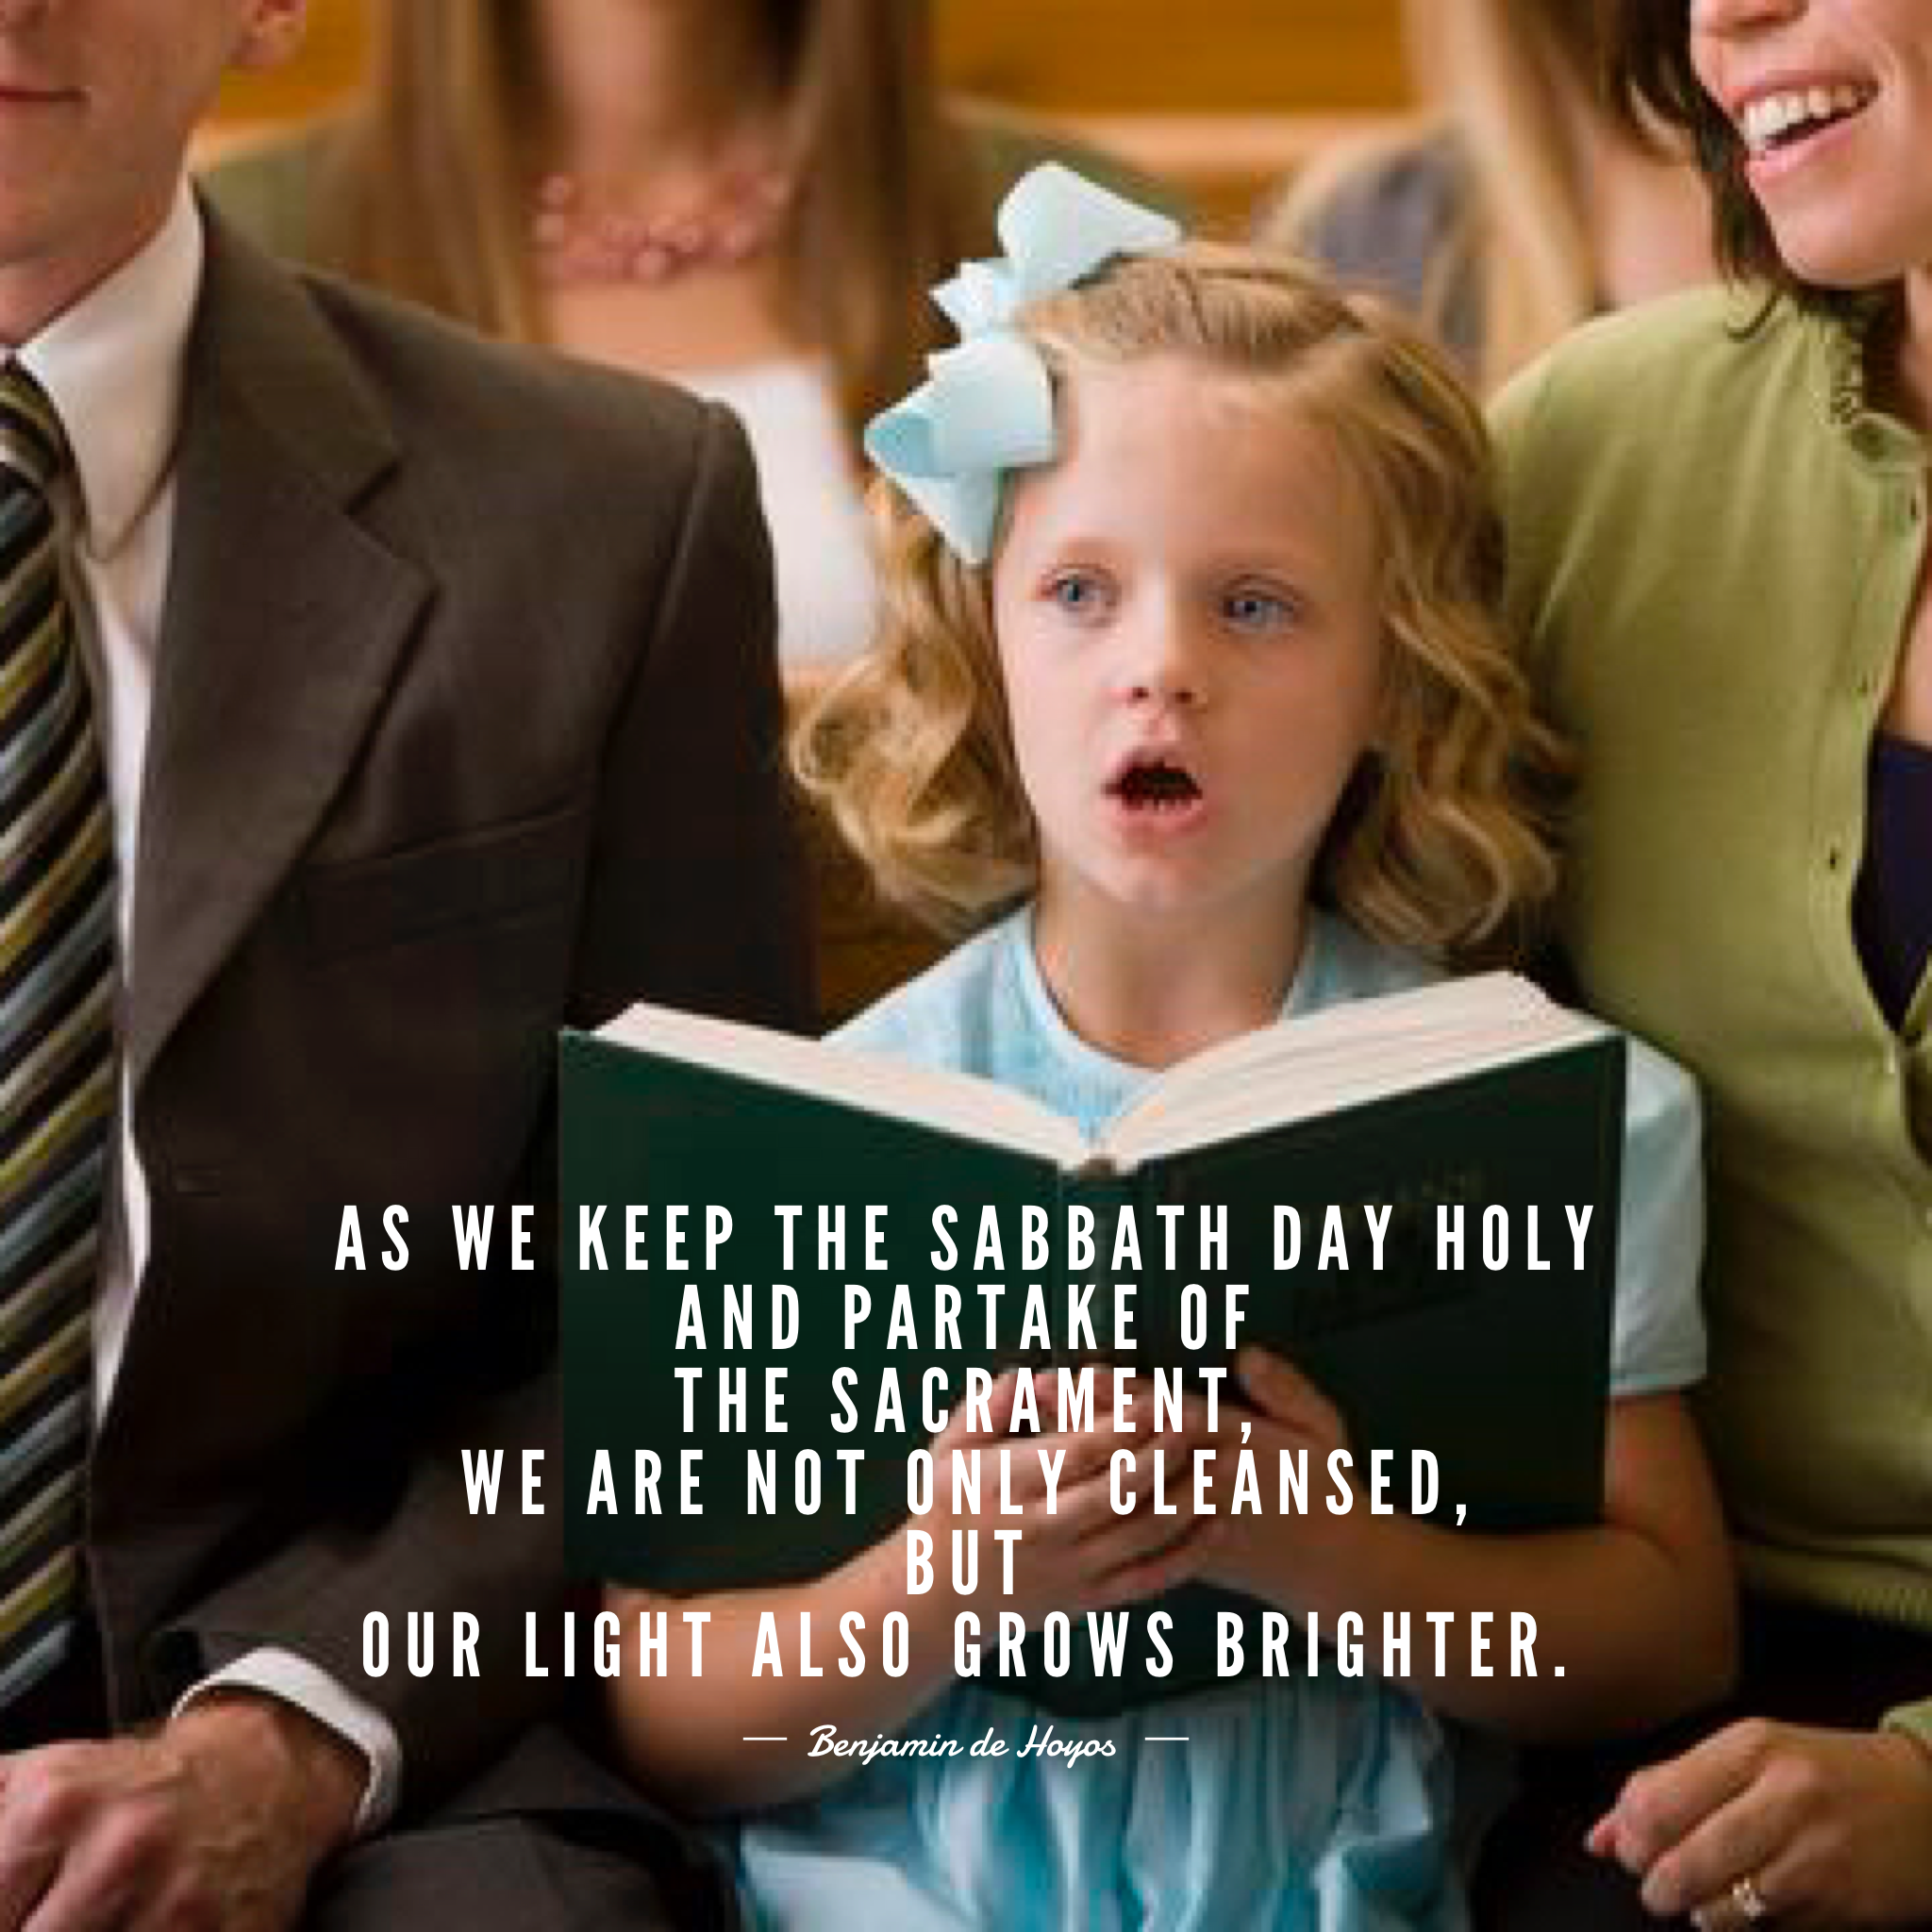 #ldsquotes #ldsconf As we keep the Sabbath day holy and partake of the  sacrament - Lds PNG Sabbath Day